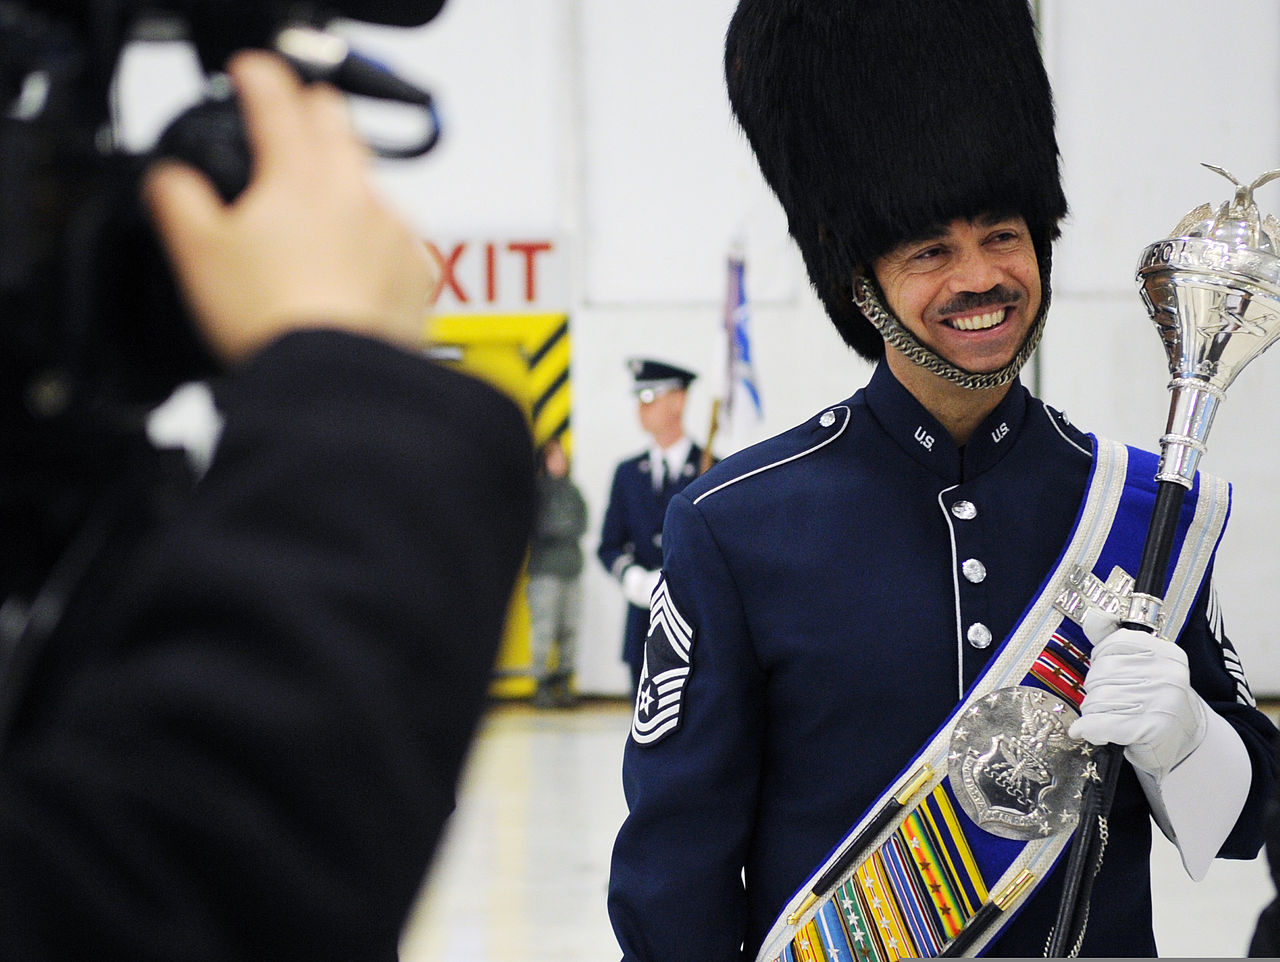 The best and worst Air Force uniforms, ranked - We Are The